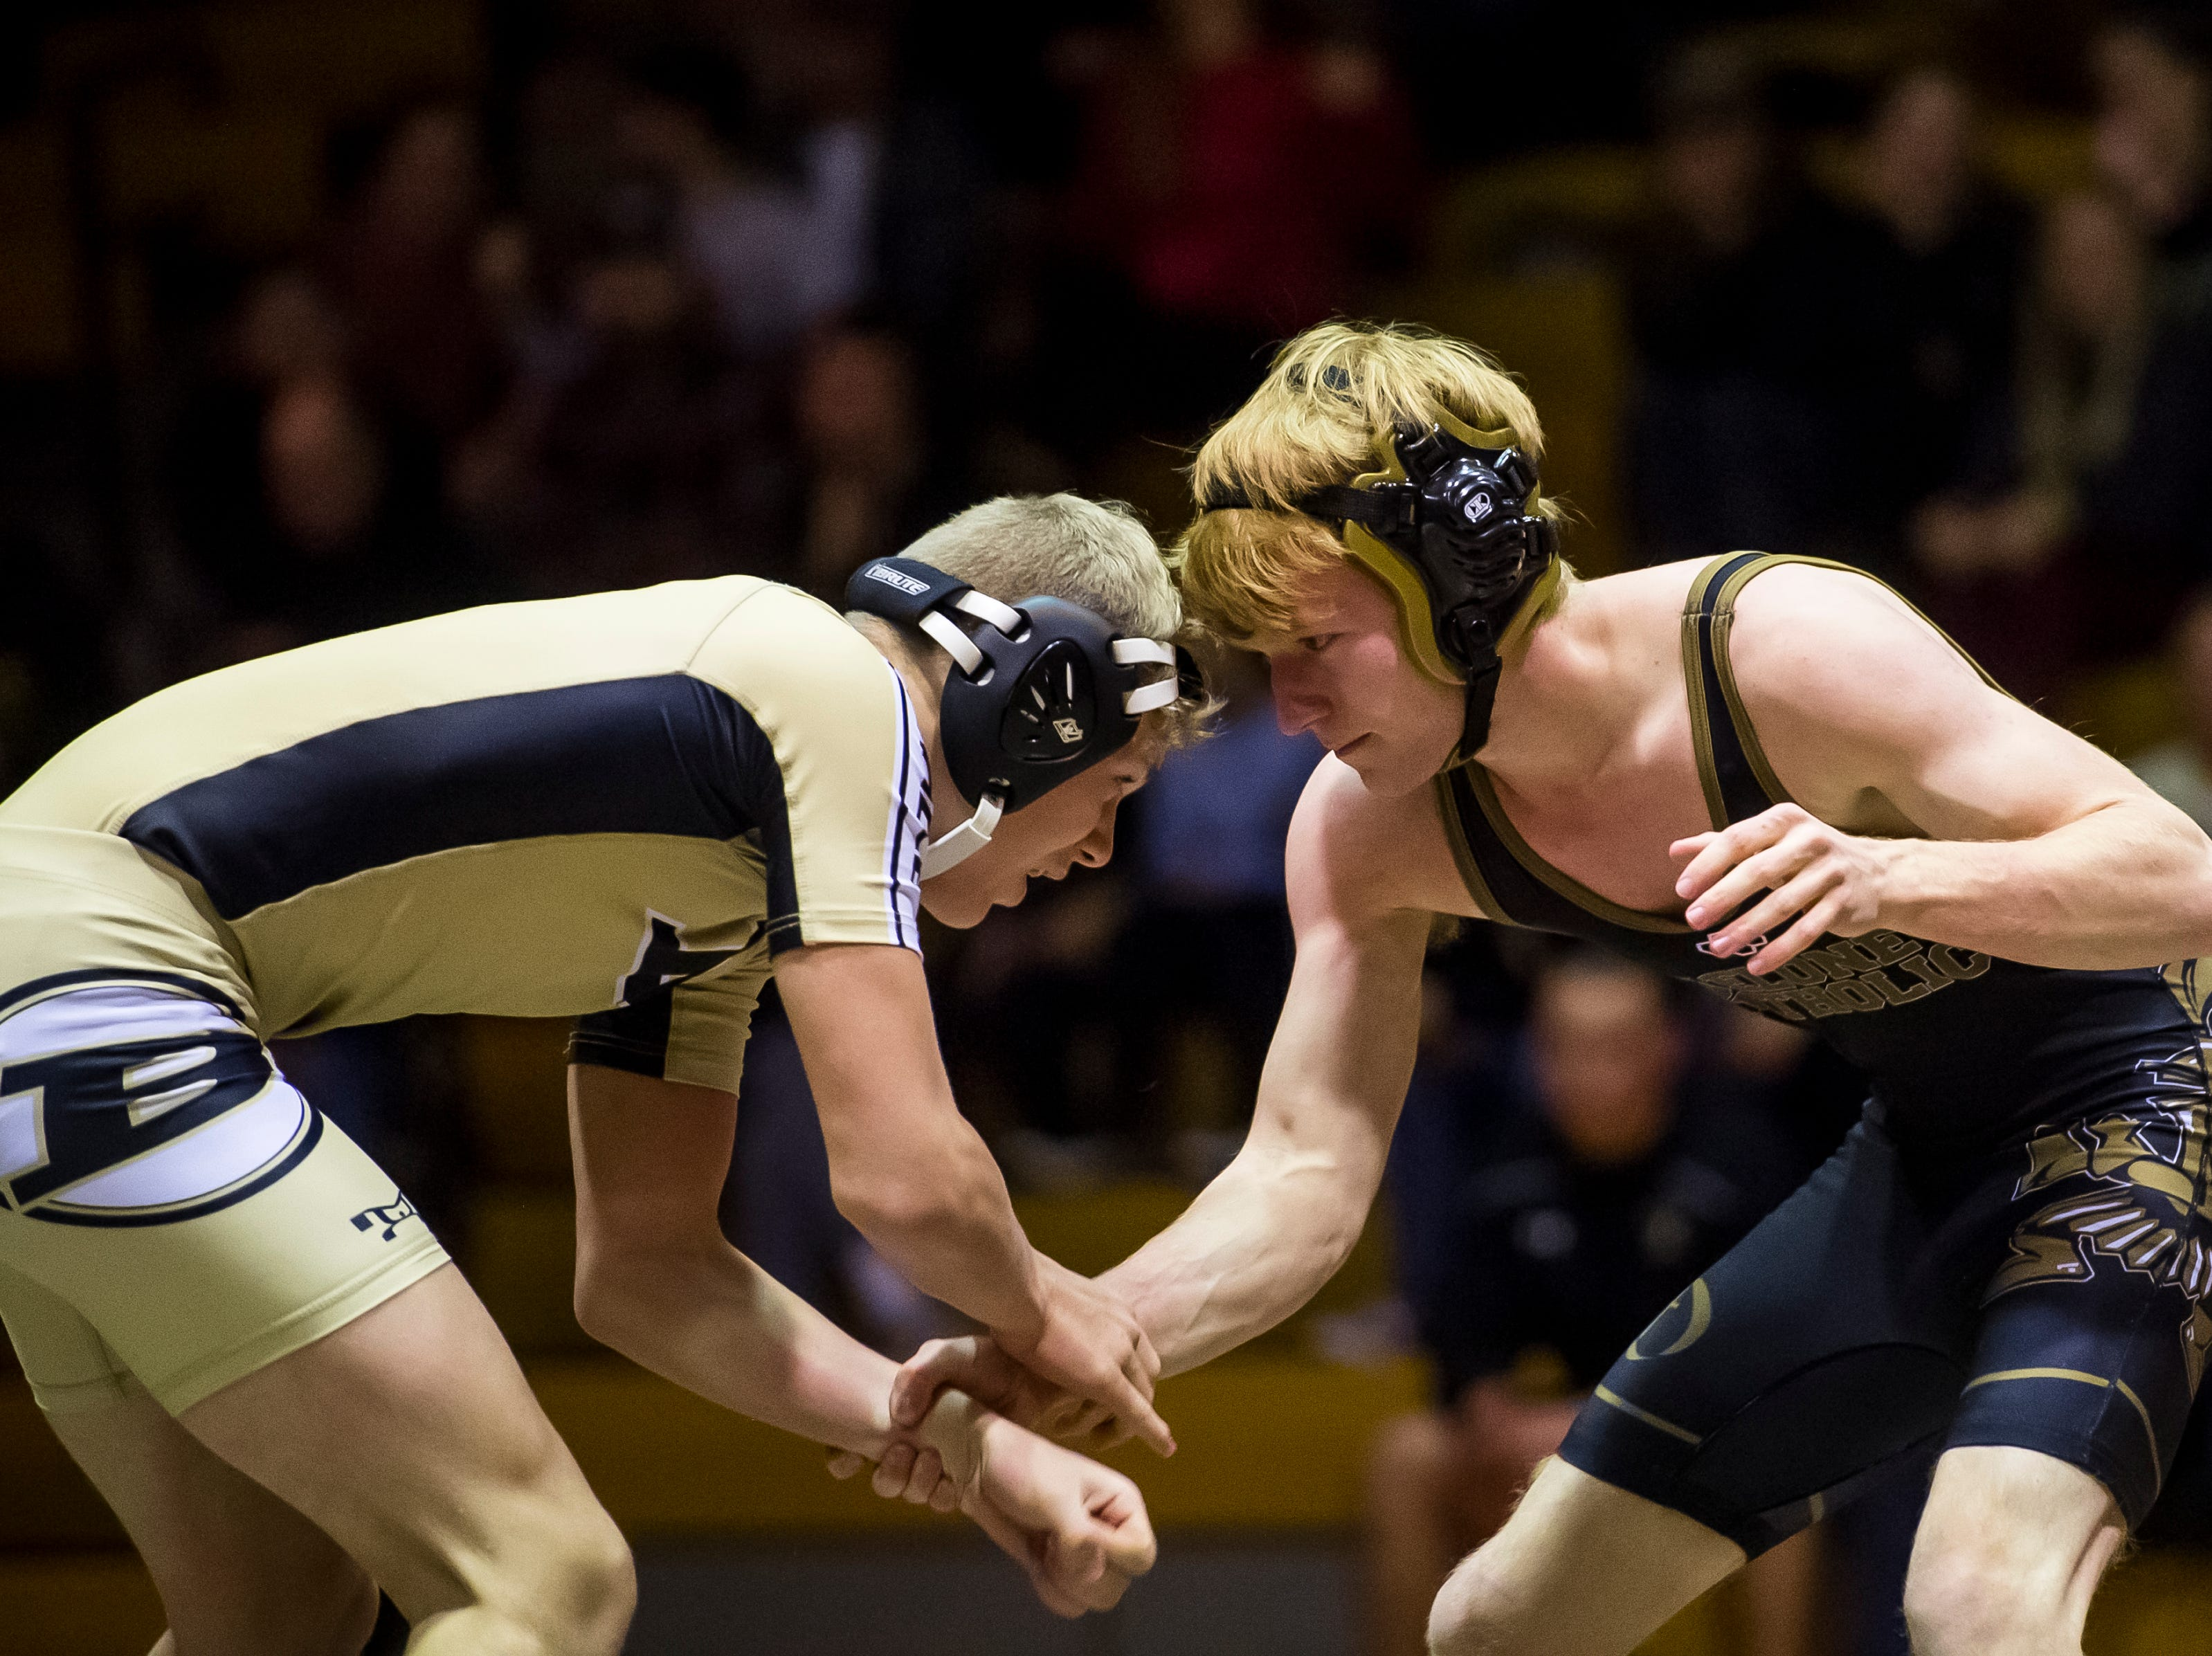 Delone Catholic's Harrison Cole, right, wrestles Biglerville's Gage Bishop in the 138-pound bout at Delone Catholic High School on December 19, 2018. Bishop won by fall and the Canners won the duel 51-21.